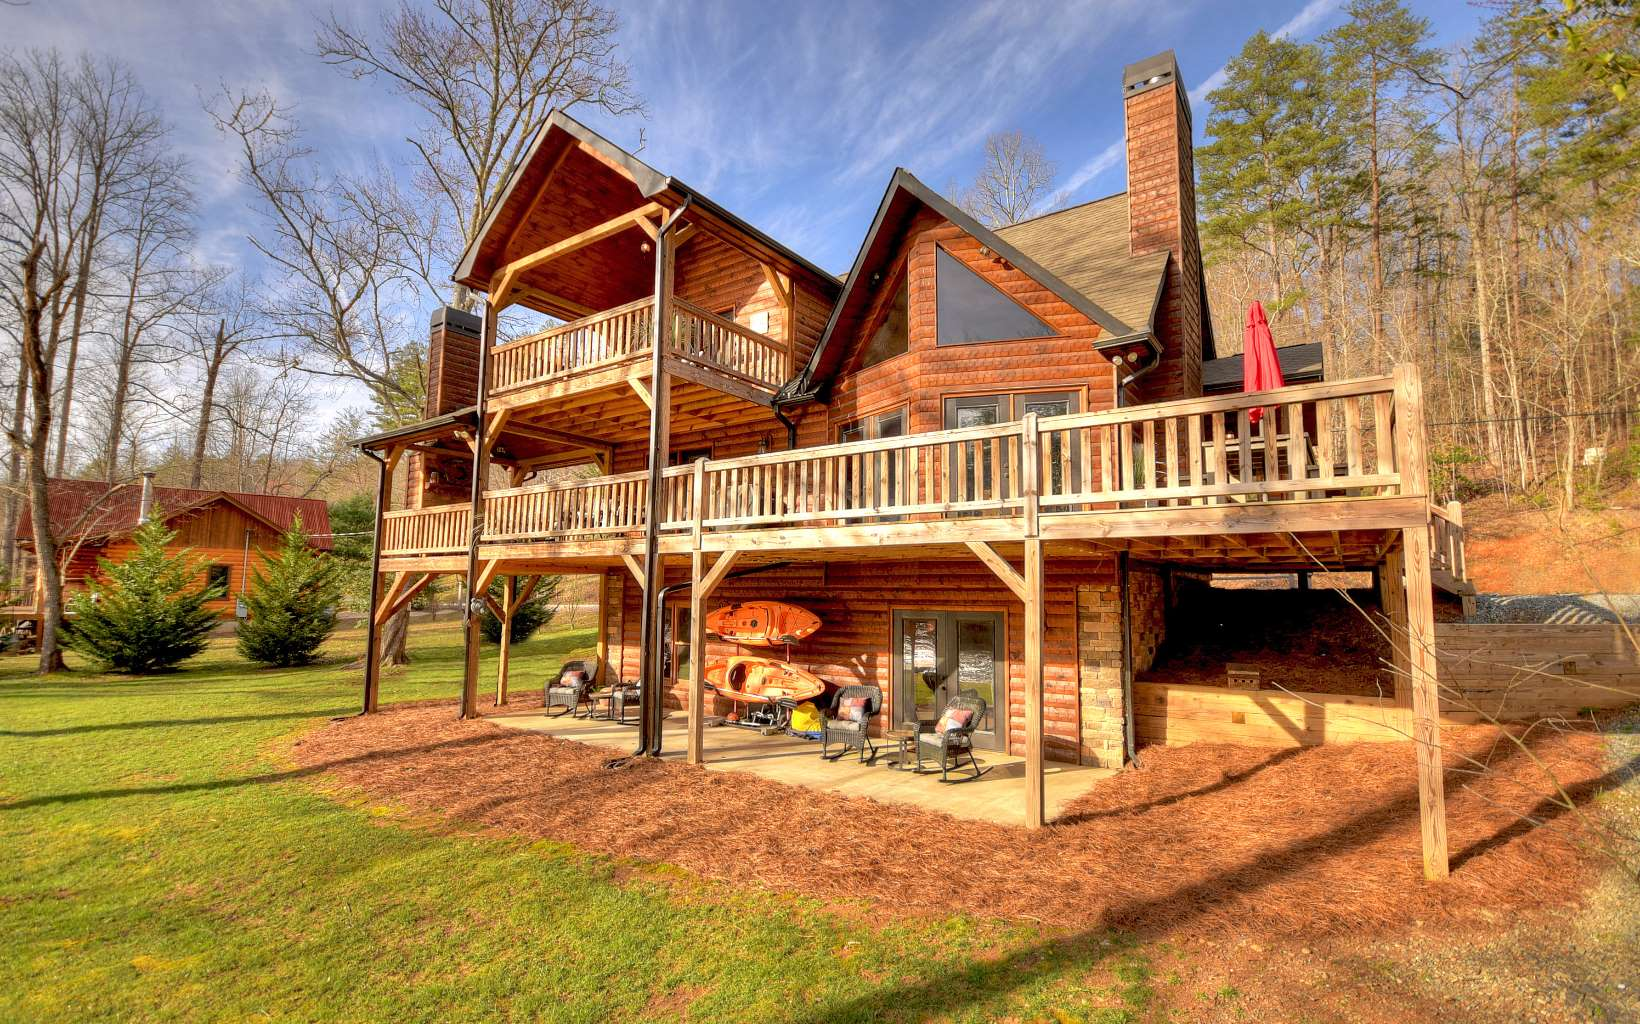 1335 N TOCCOA RIVER ROAD